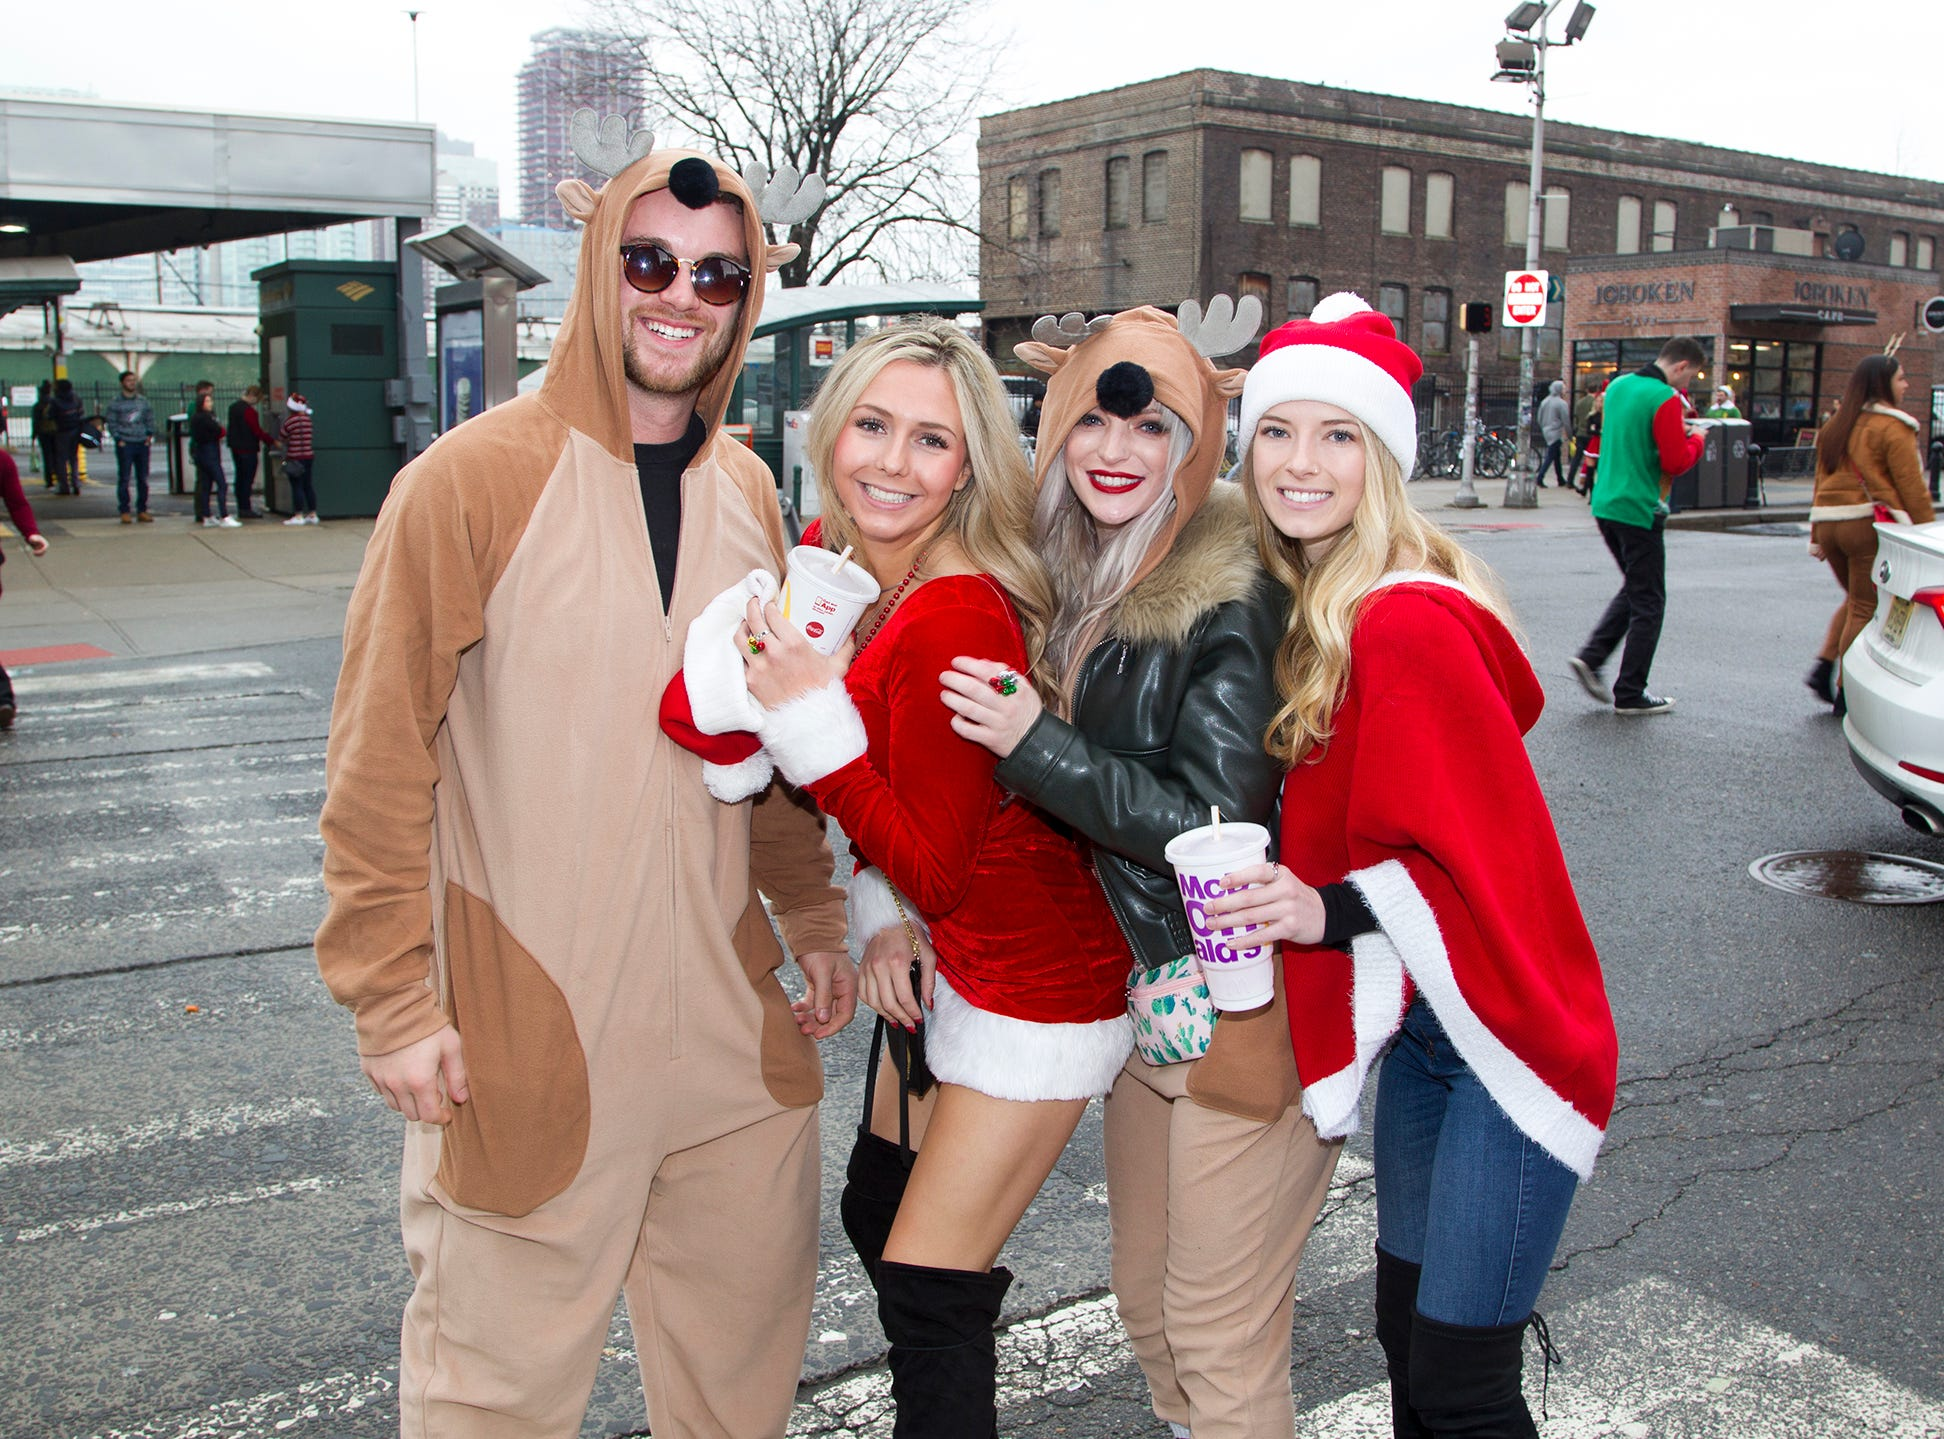 2018 SantaCon in Hoboken. SantaCon is a convention  men and women dressed like Santa. 12/15/2018